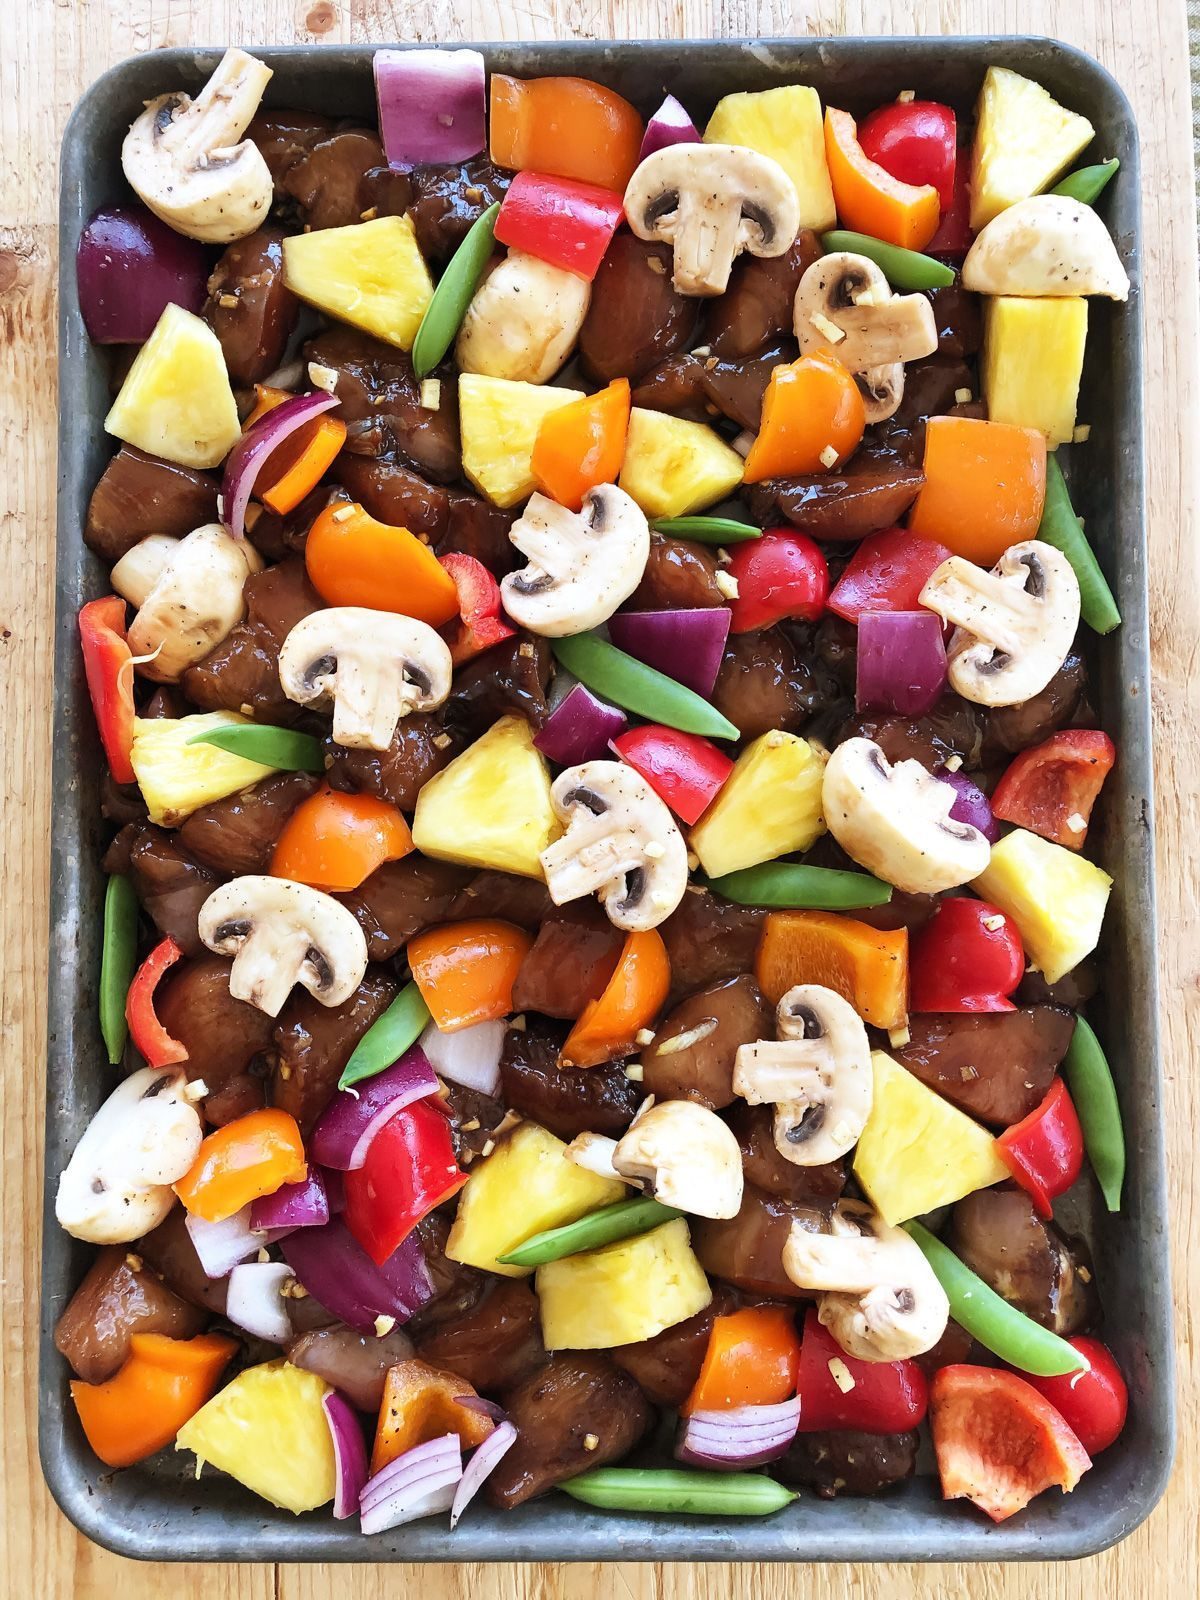 This Hawaiian Chicken Sheet Pan Supper is made with chunks of flavourful marinated chicken, roasted vegetables and roasted pineapple. A simple and quick dinner that everyone will love! #sheetpansuppers This Hawaiian Chicken Sheet Pan Supper is made with chunks of flavourful marinated chicken, roasted vegetables and roasted pineapple. A simple and quick dinner that everyone will love! #sheetpansuppers This Hawaiian Chicken Sheet Pan Supper is made with chunks of flavourful marinated chicken, #sheetpansuppers